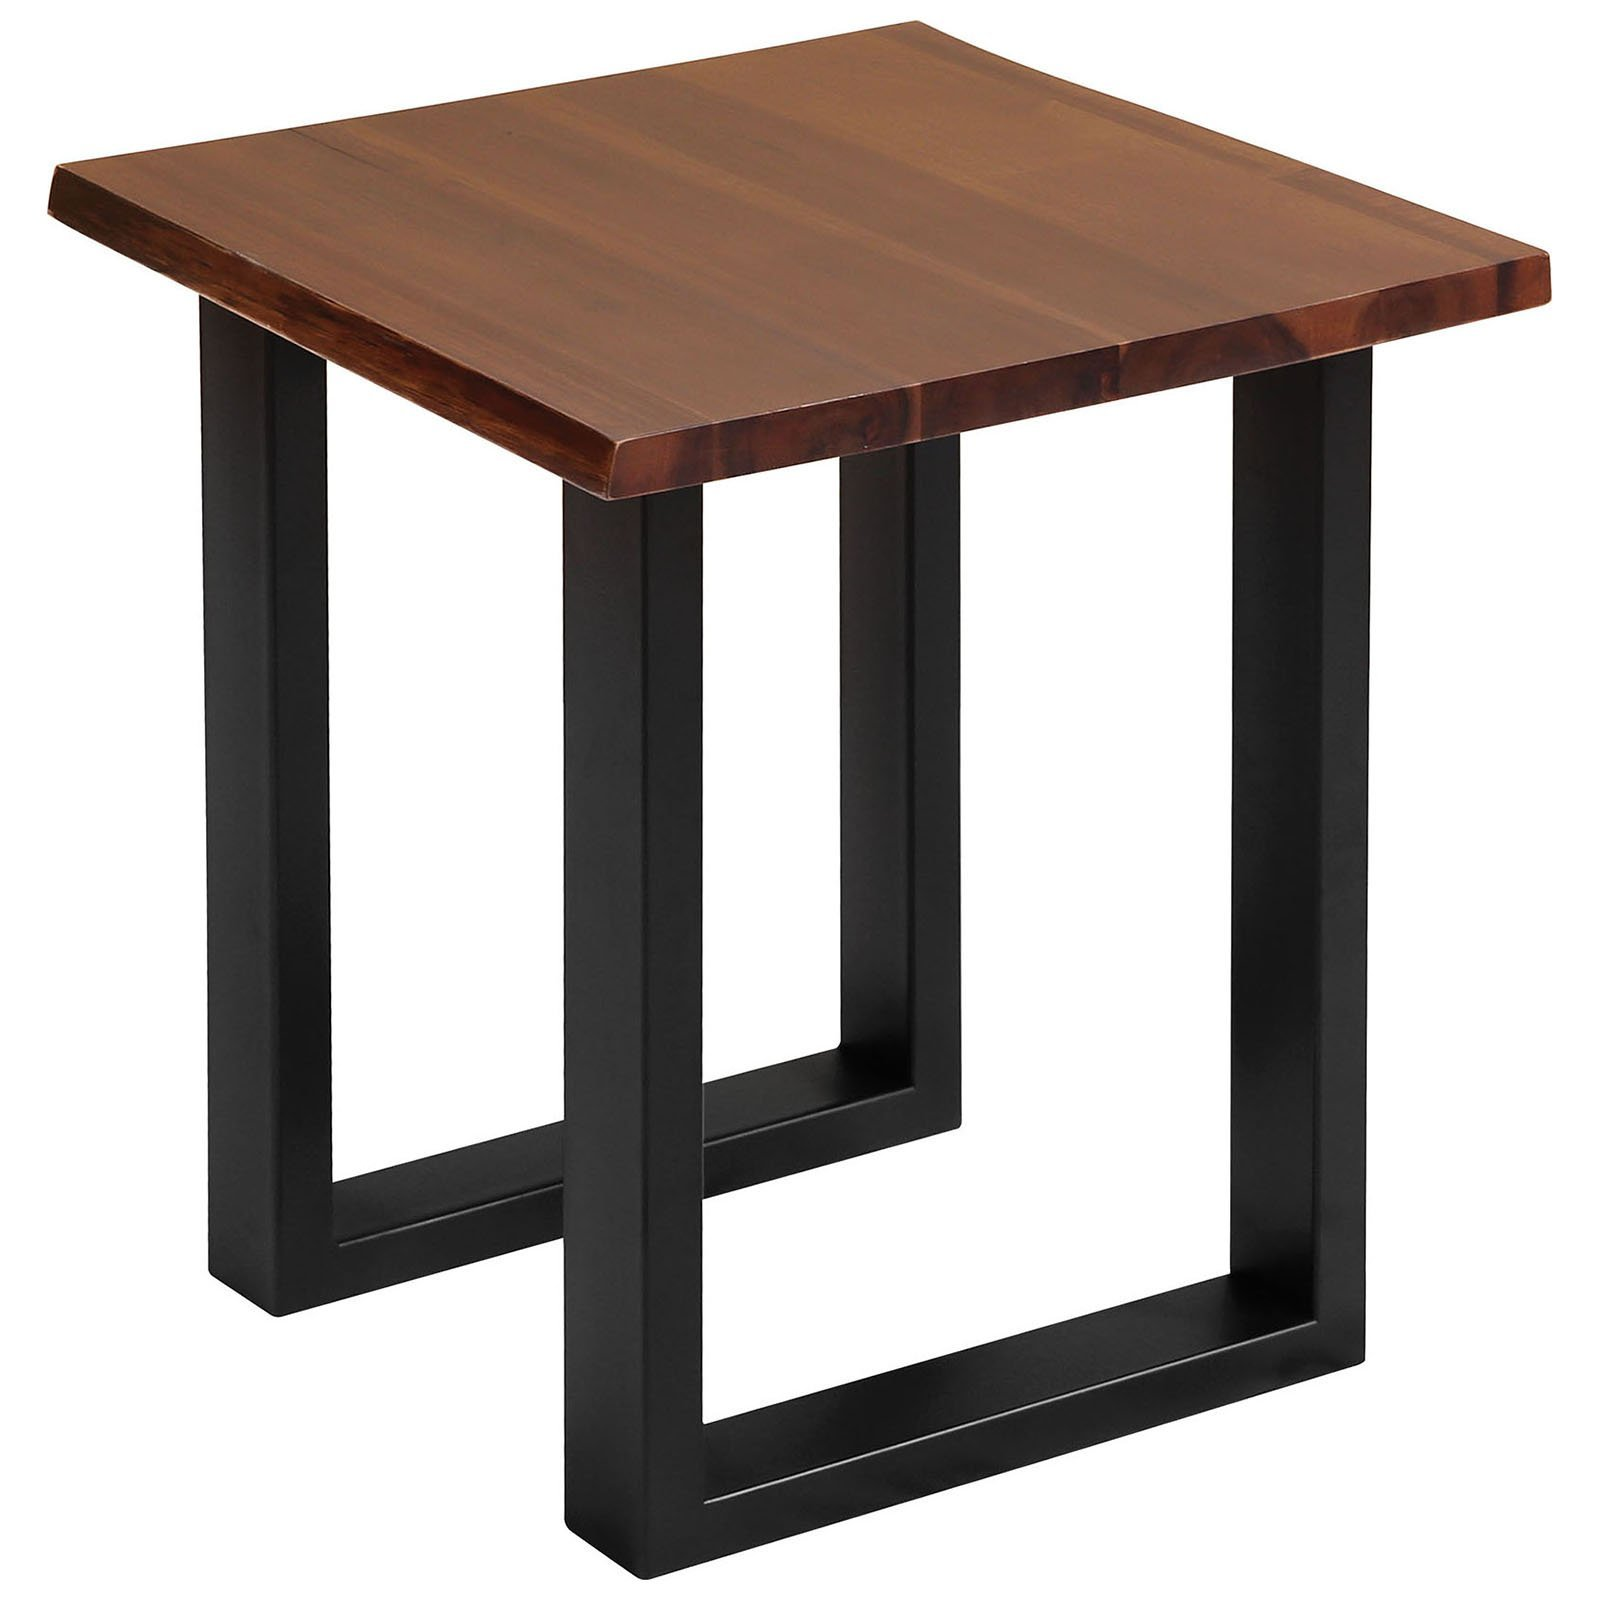 accent tables south loop dark brown and black modern farmhouse table with acacia wood metal side circular nest comfy patio chairs tablecloths runners hobby lobby lamps coffee sets